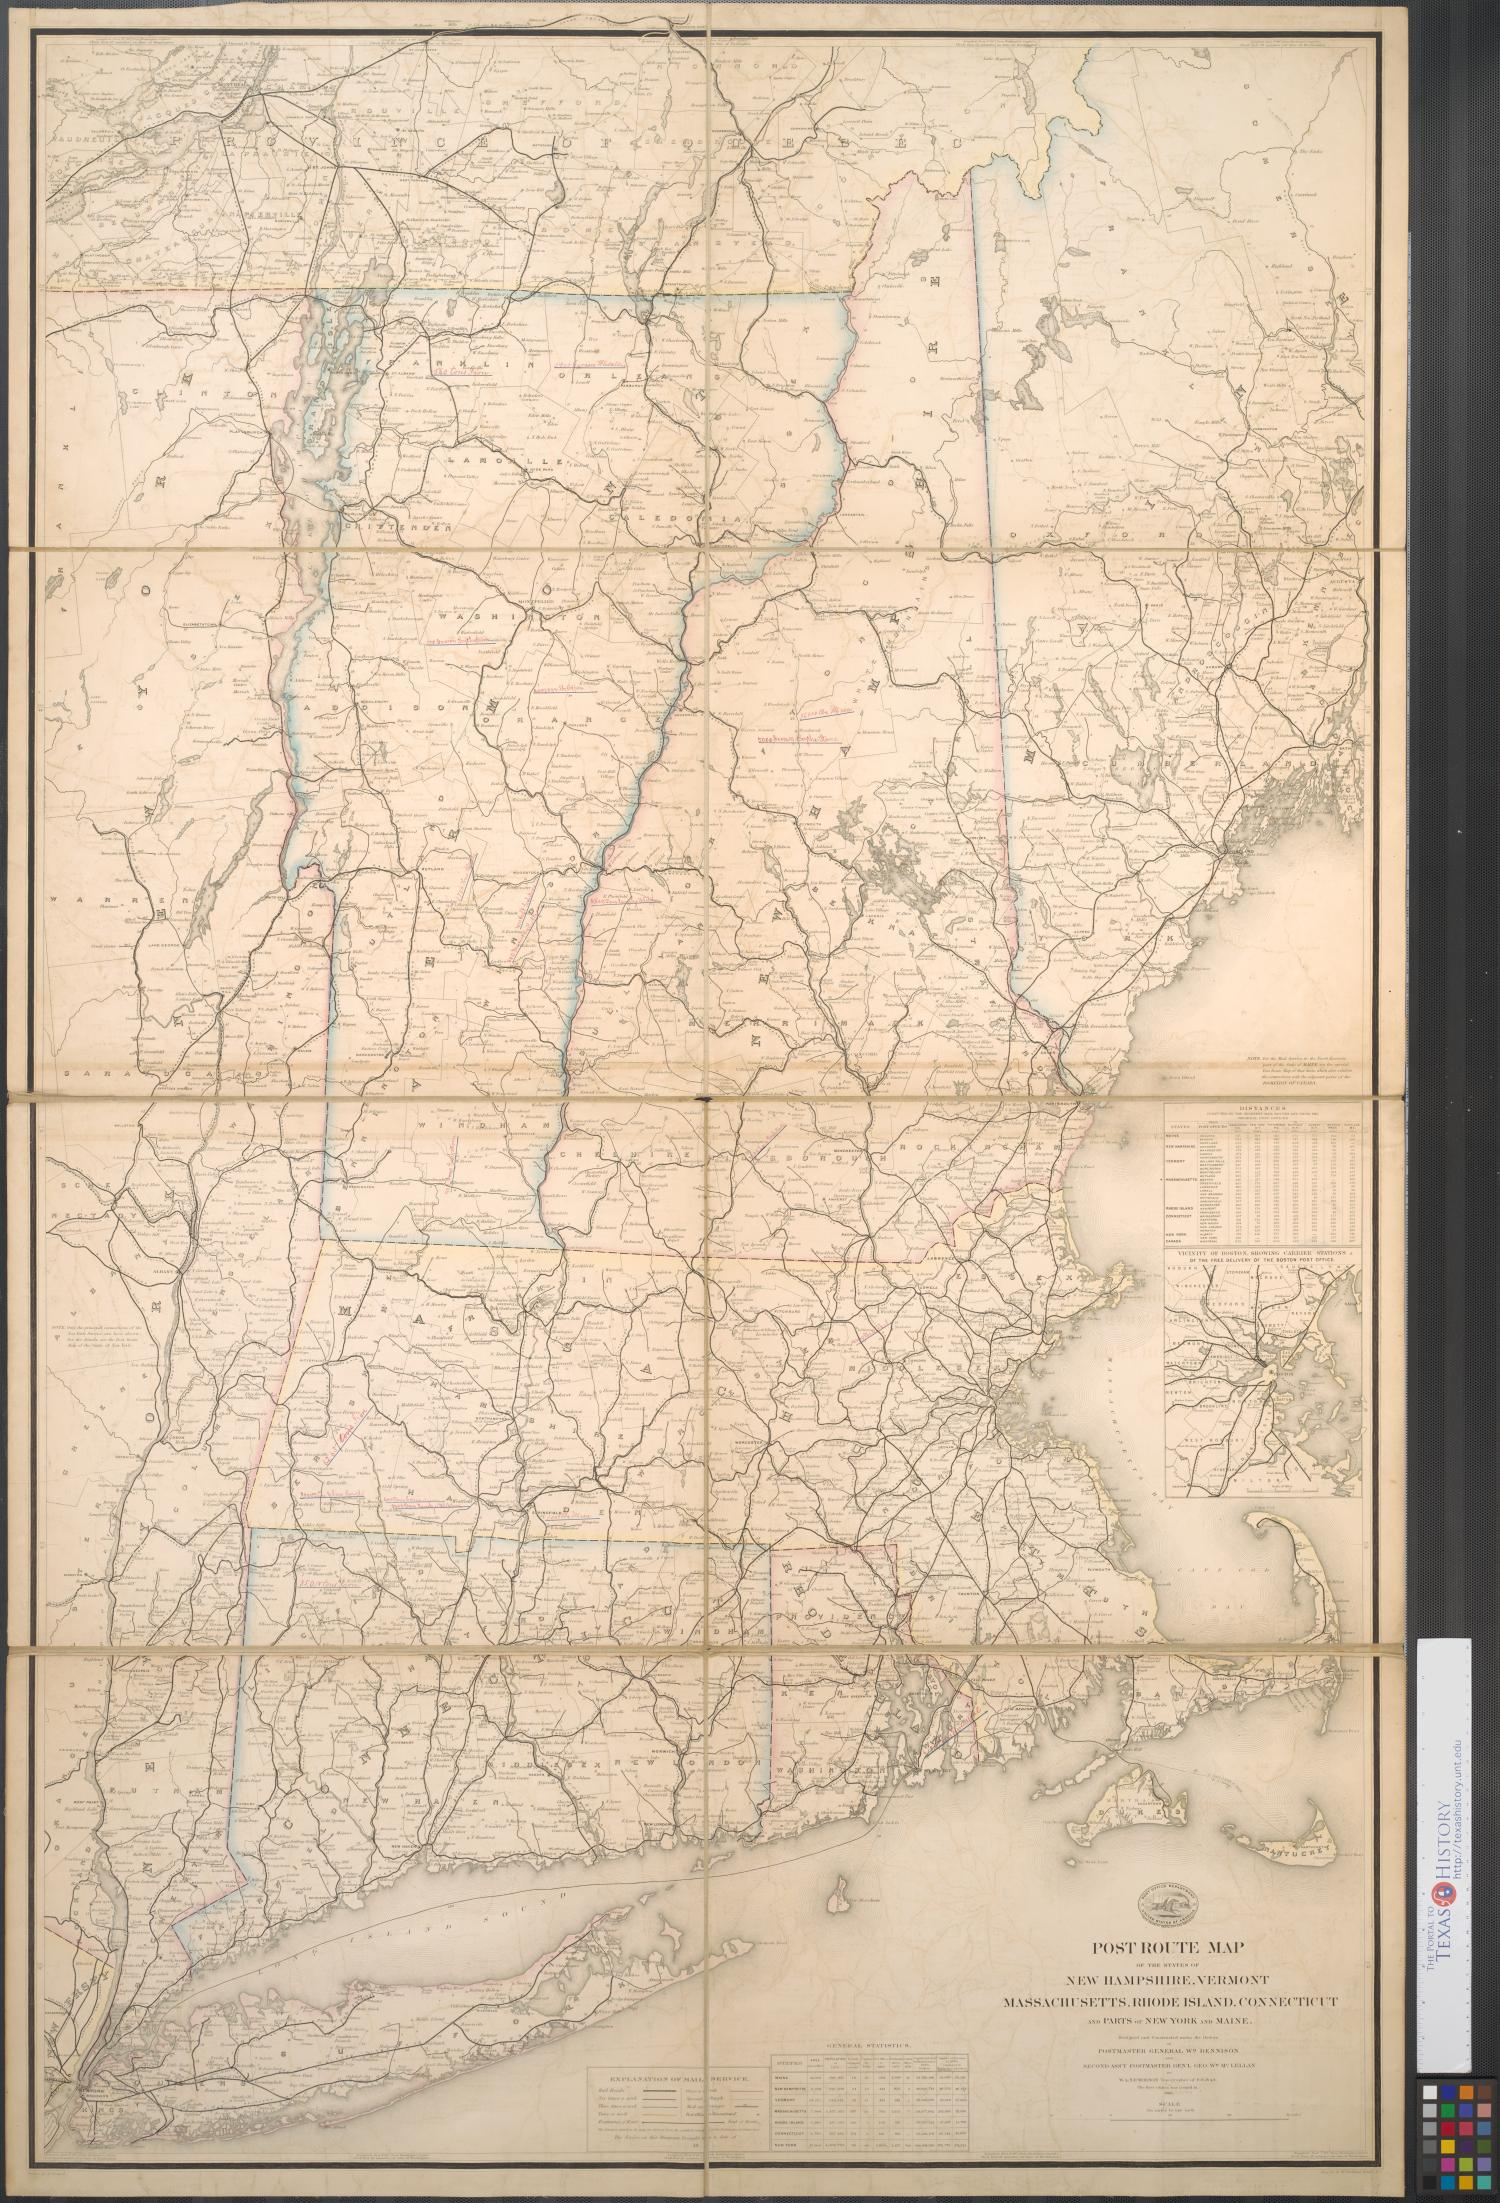 Post route map of the states of New Hampshire, Vermont, Massachusetts, Rhode Island, Connecticut and parts of New York and Maine.                                                                                                      [Sequence #]: 1 of 2